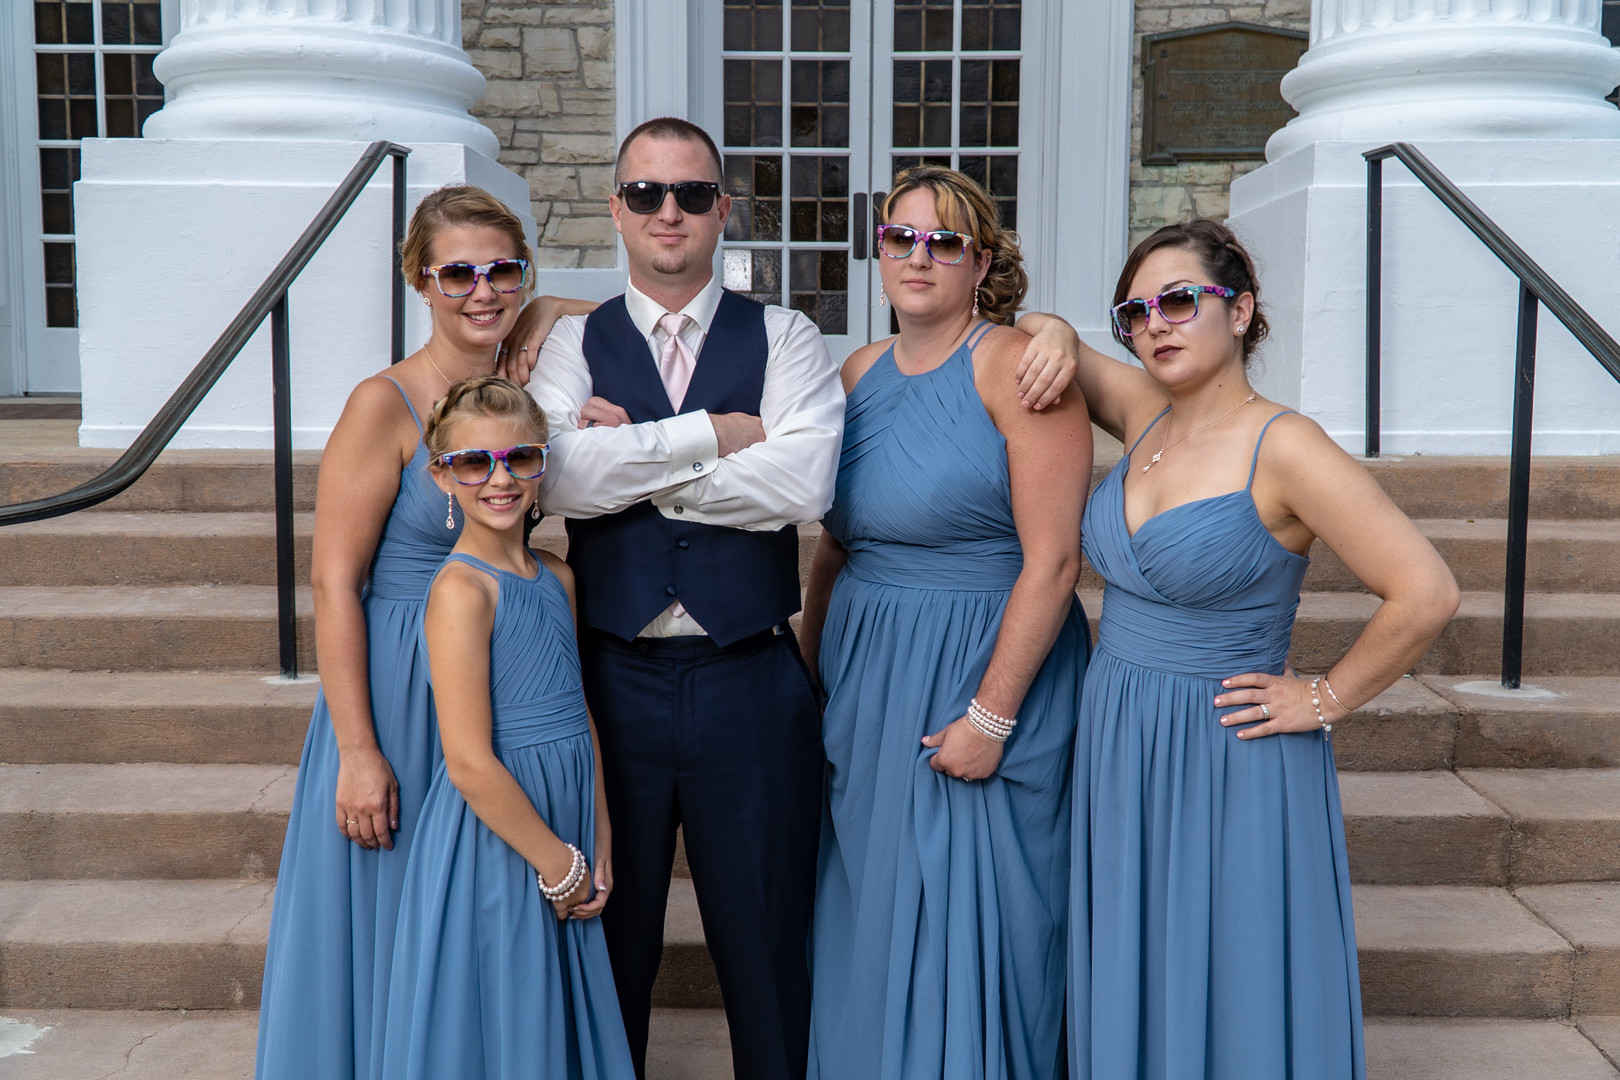 Belling_Belling_JoshRussellWeddings_DSC08570_big.jpg